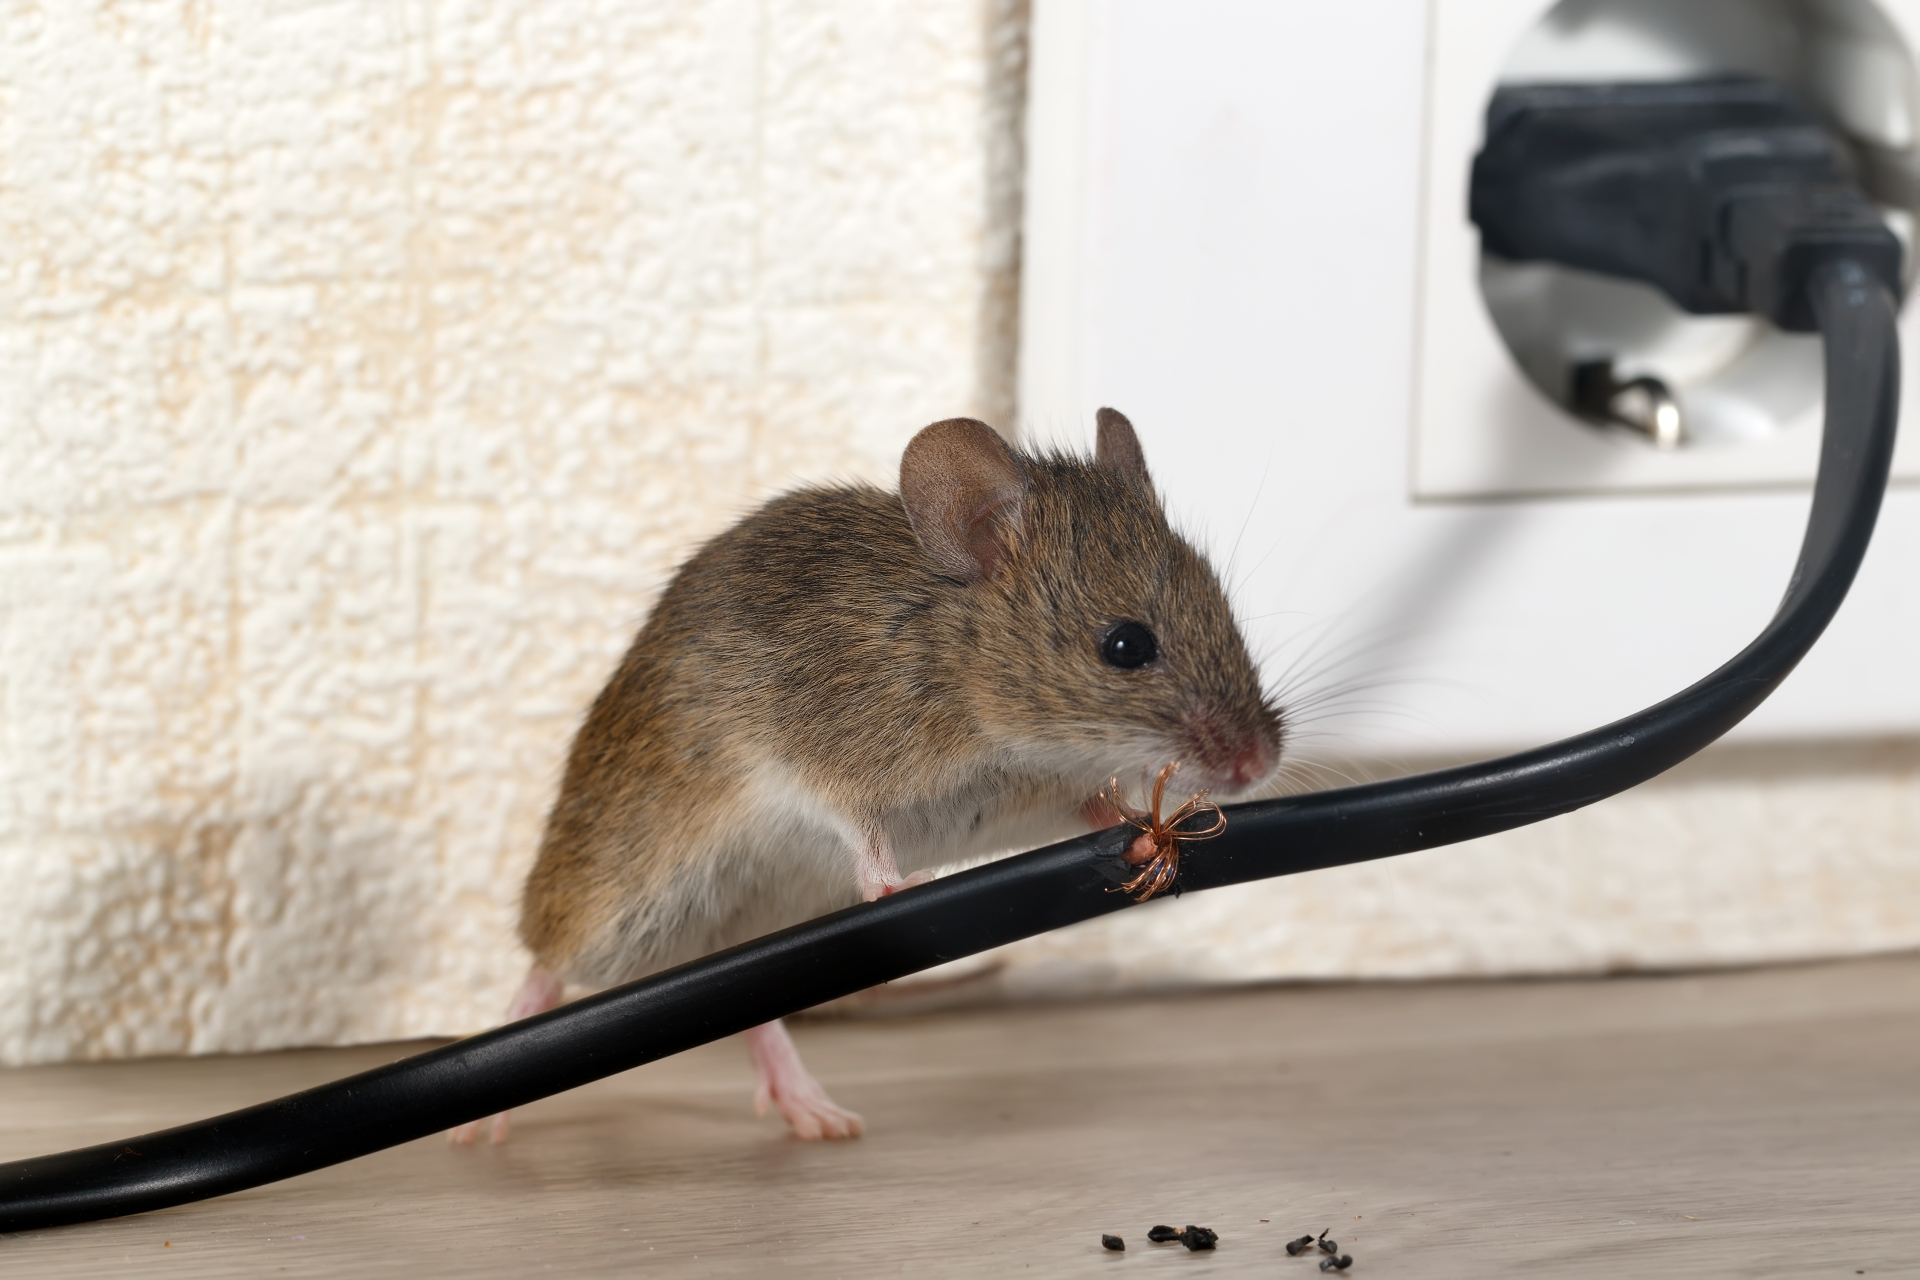 Mice Infestation, Pest Control in Herne Hill, SE24. Call Now 020 8166 9746